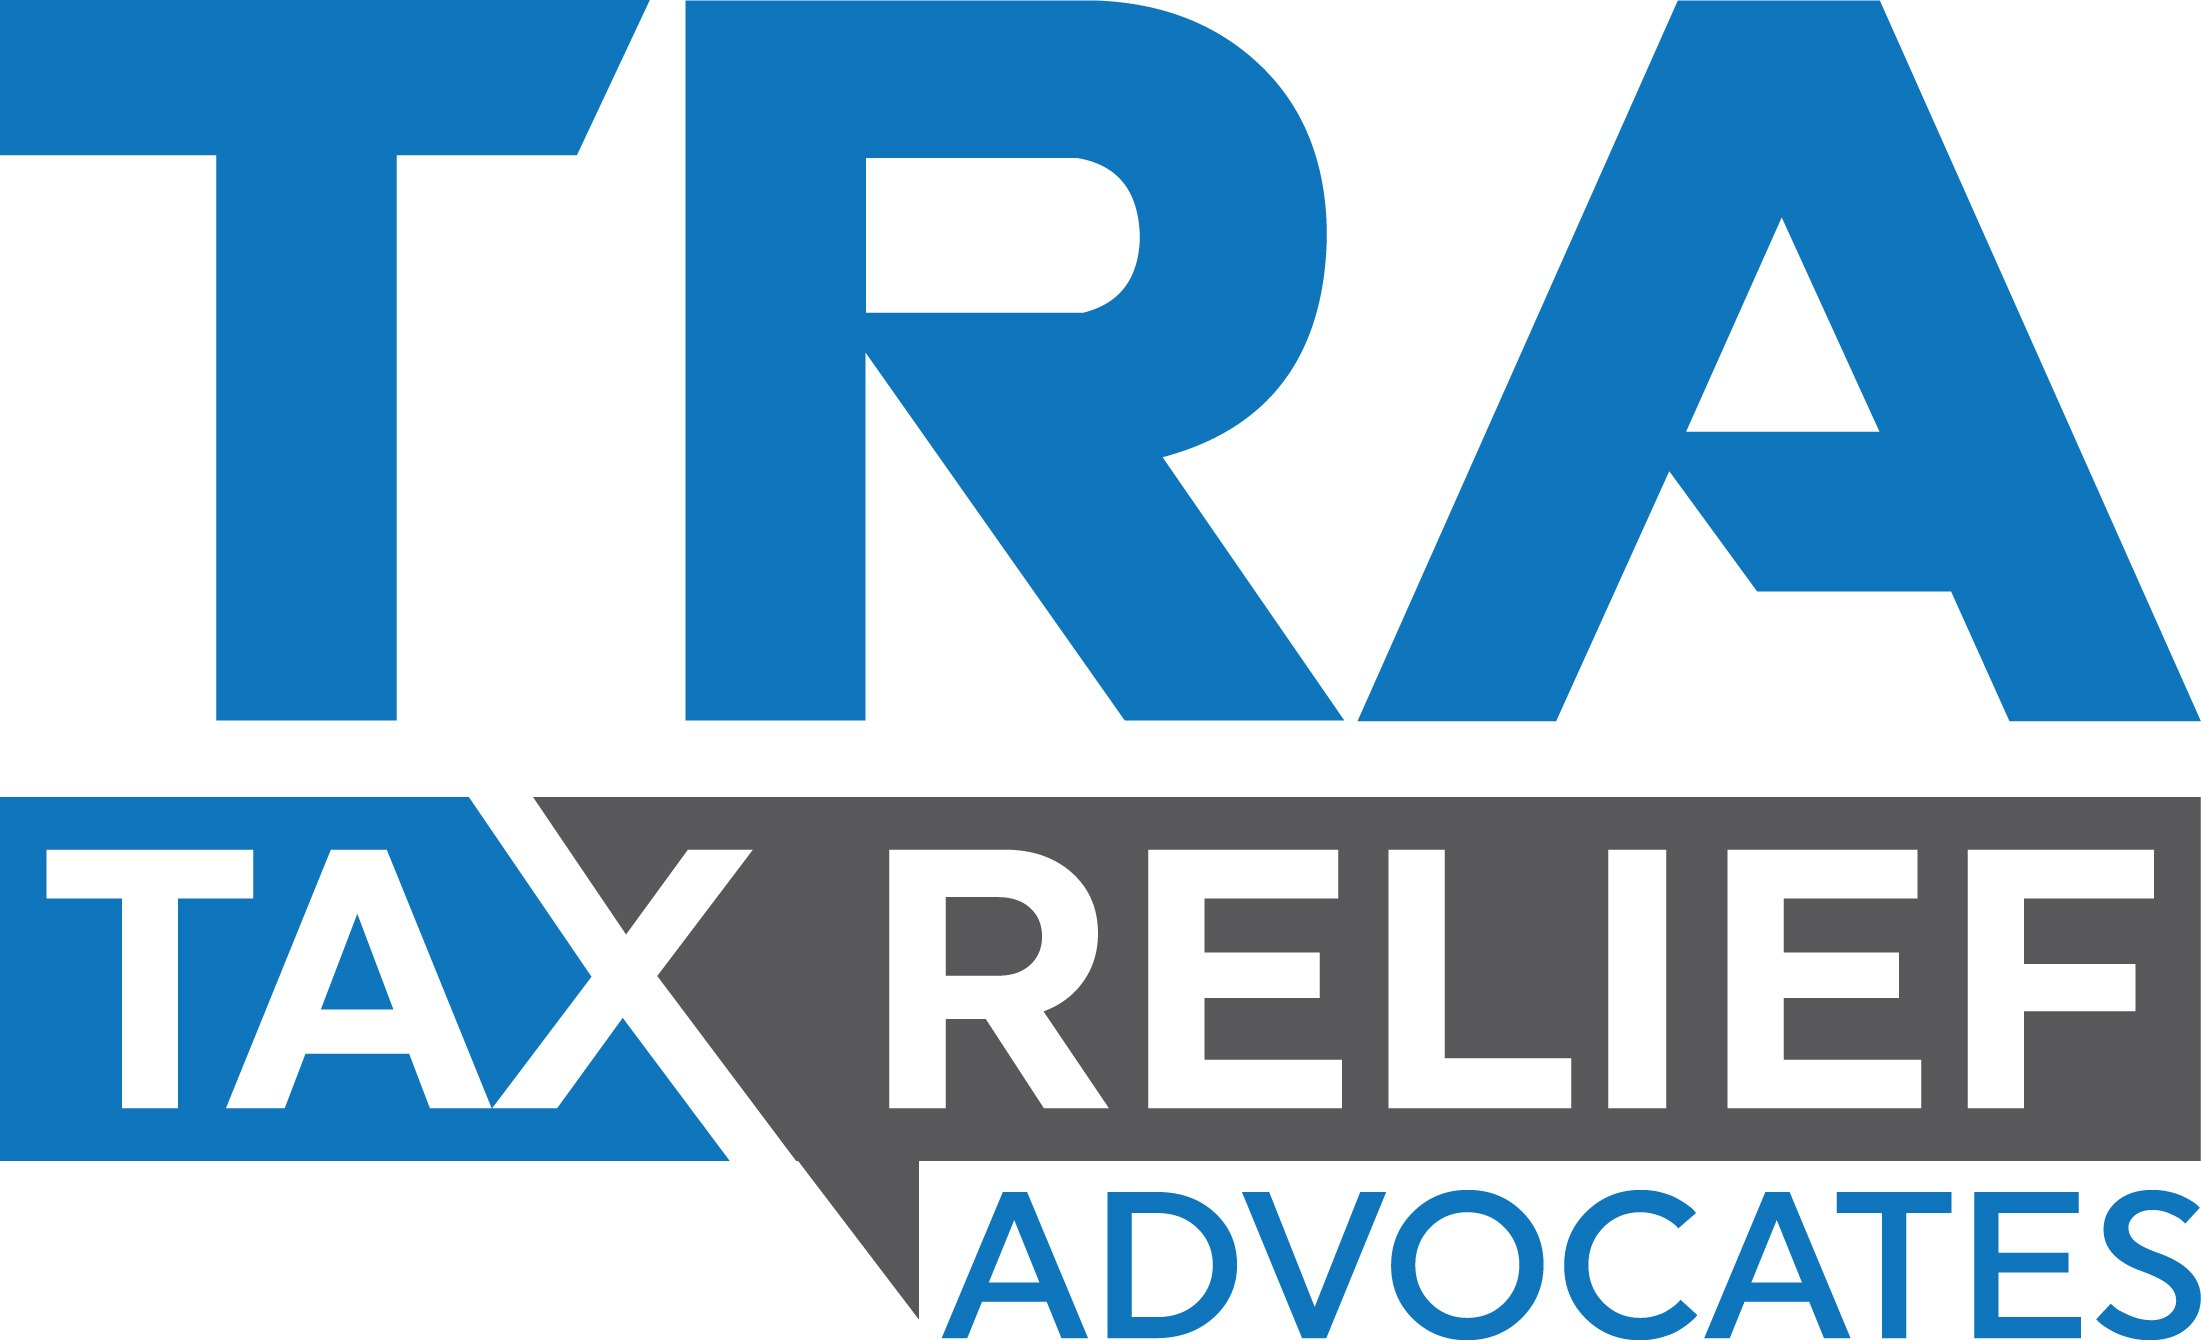 Income Tax Relief Austin TX